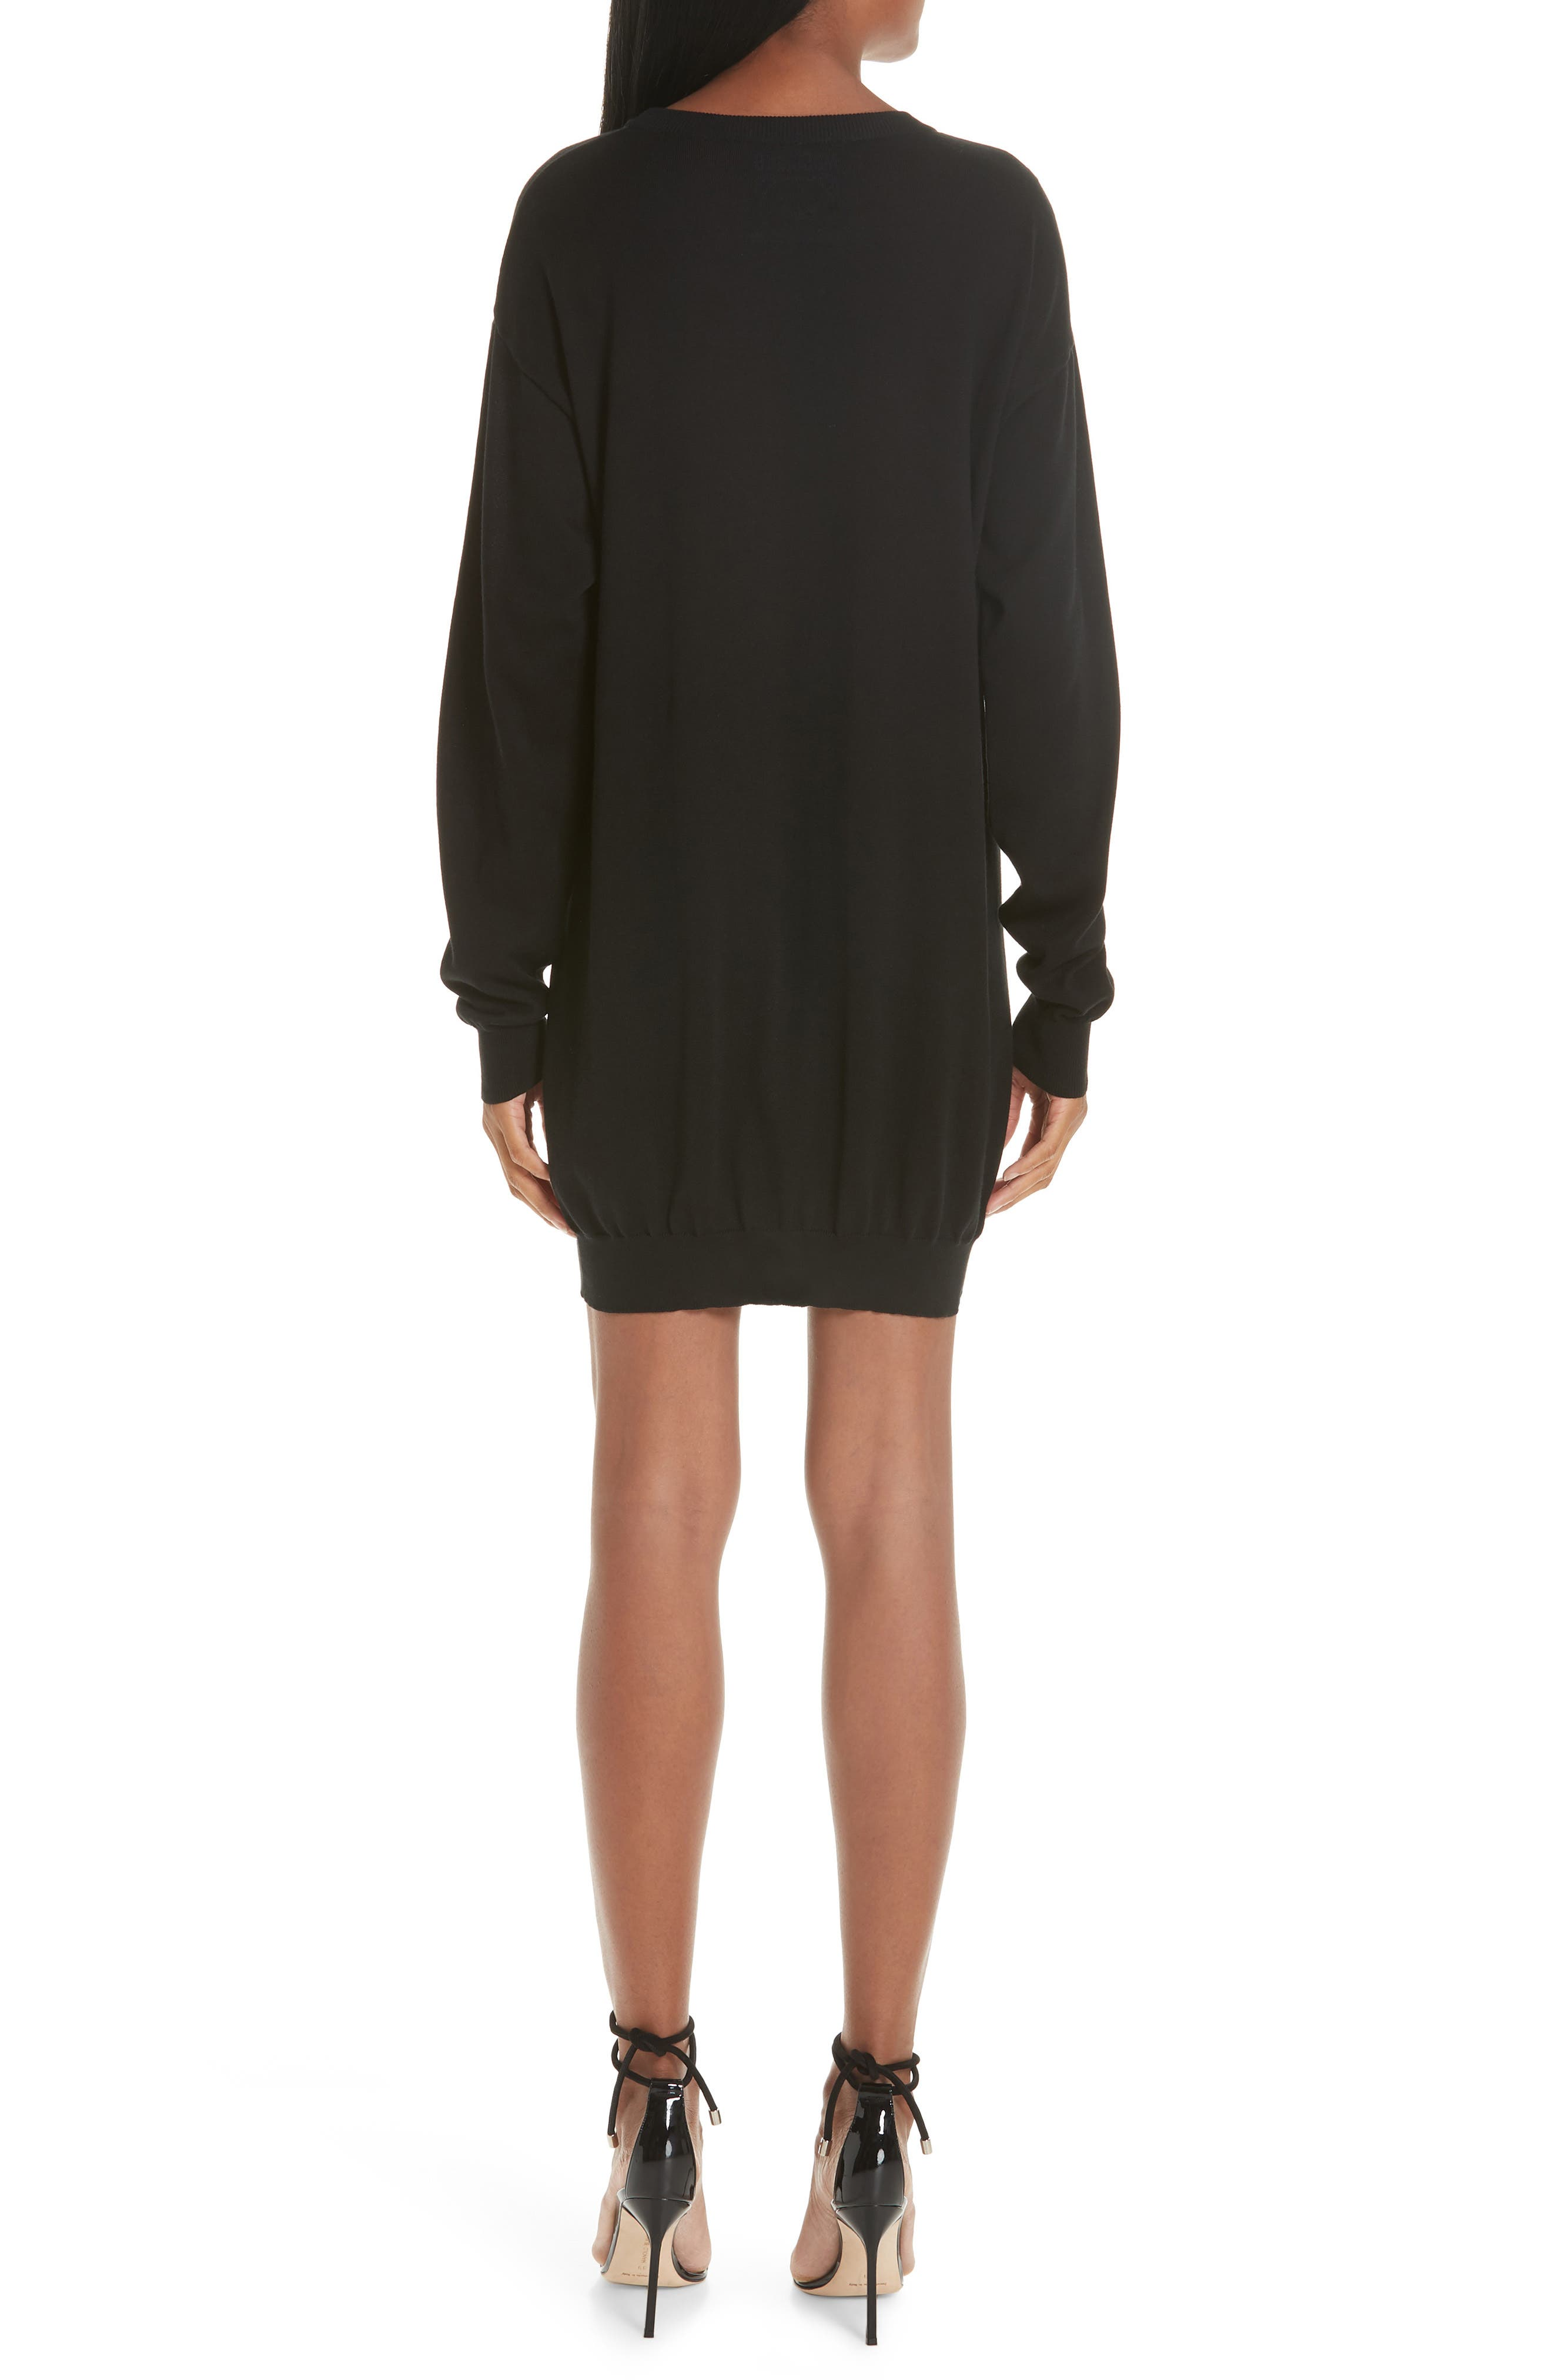 MOSCHINO, Circus Teddy Sweater Dress, Alternate thumbnail 2, color, BLACK